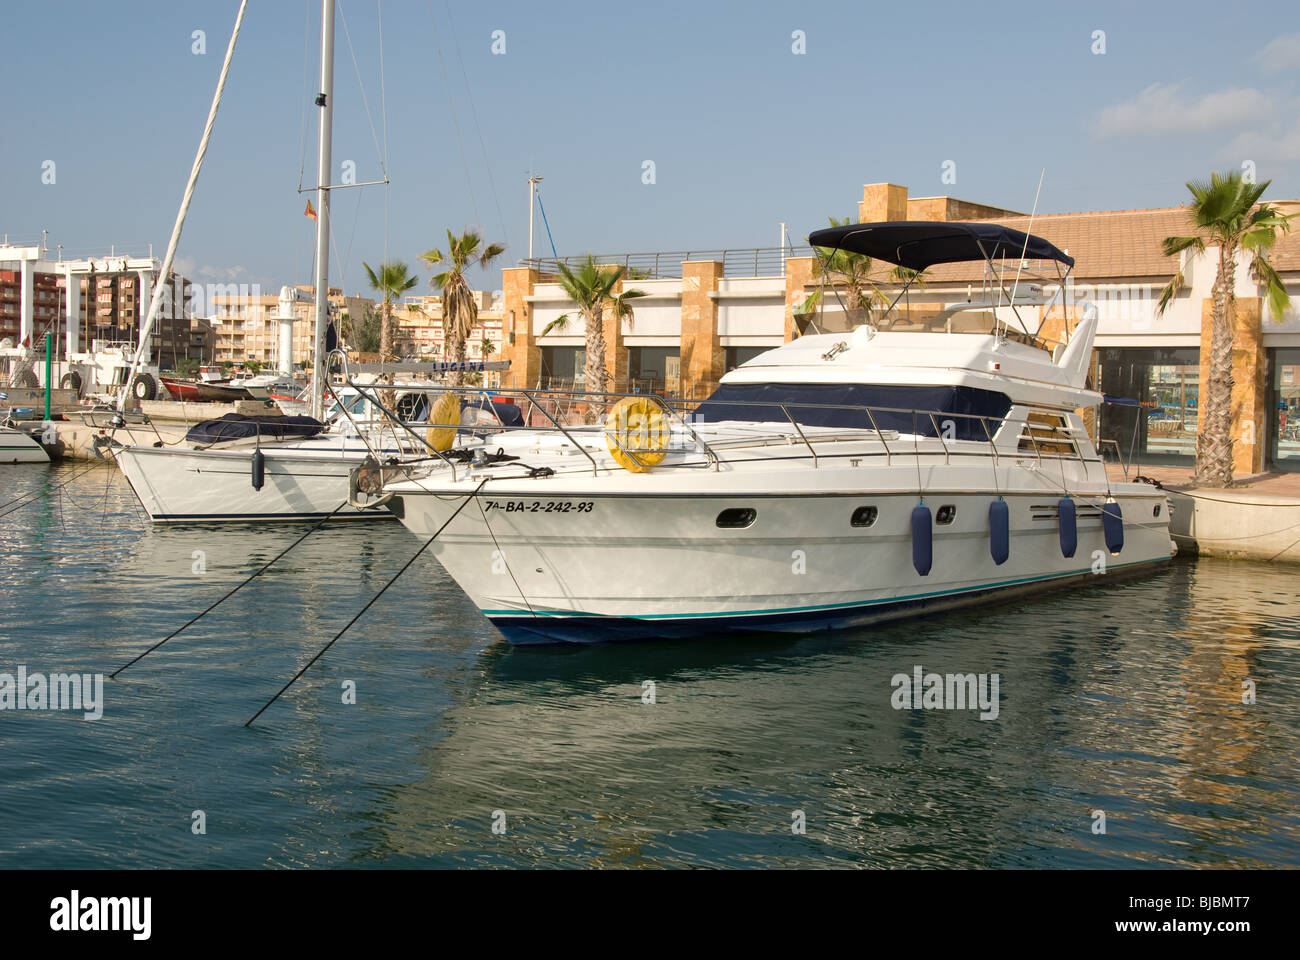 Yacht Boat anchored in the new Marina at Puerto de Mazzaron Murcia Costa  Calida Spain - Stock Image